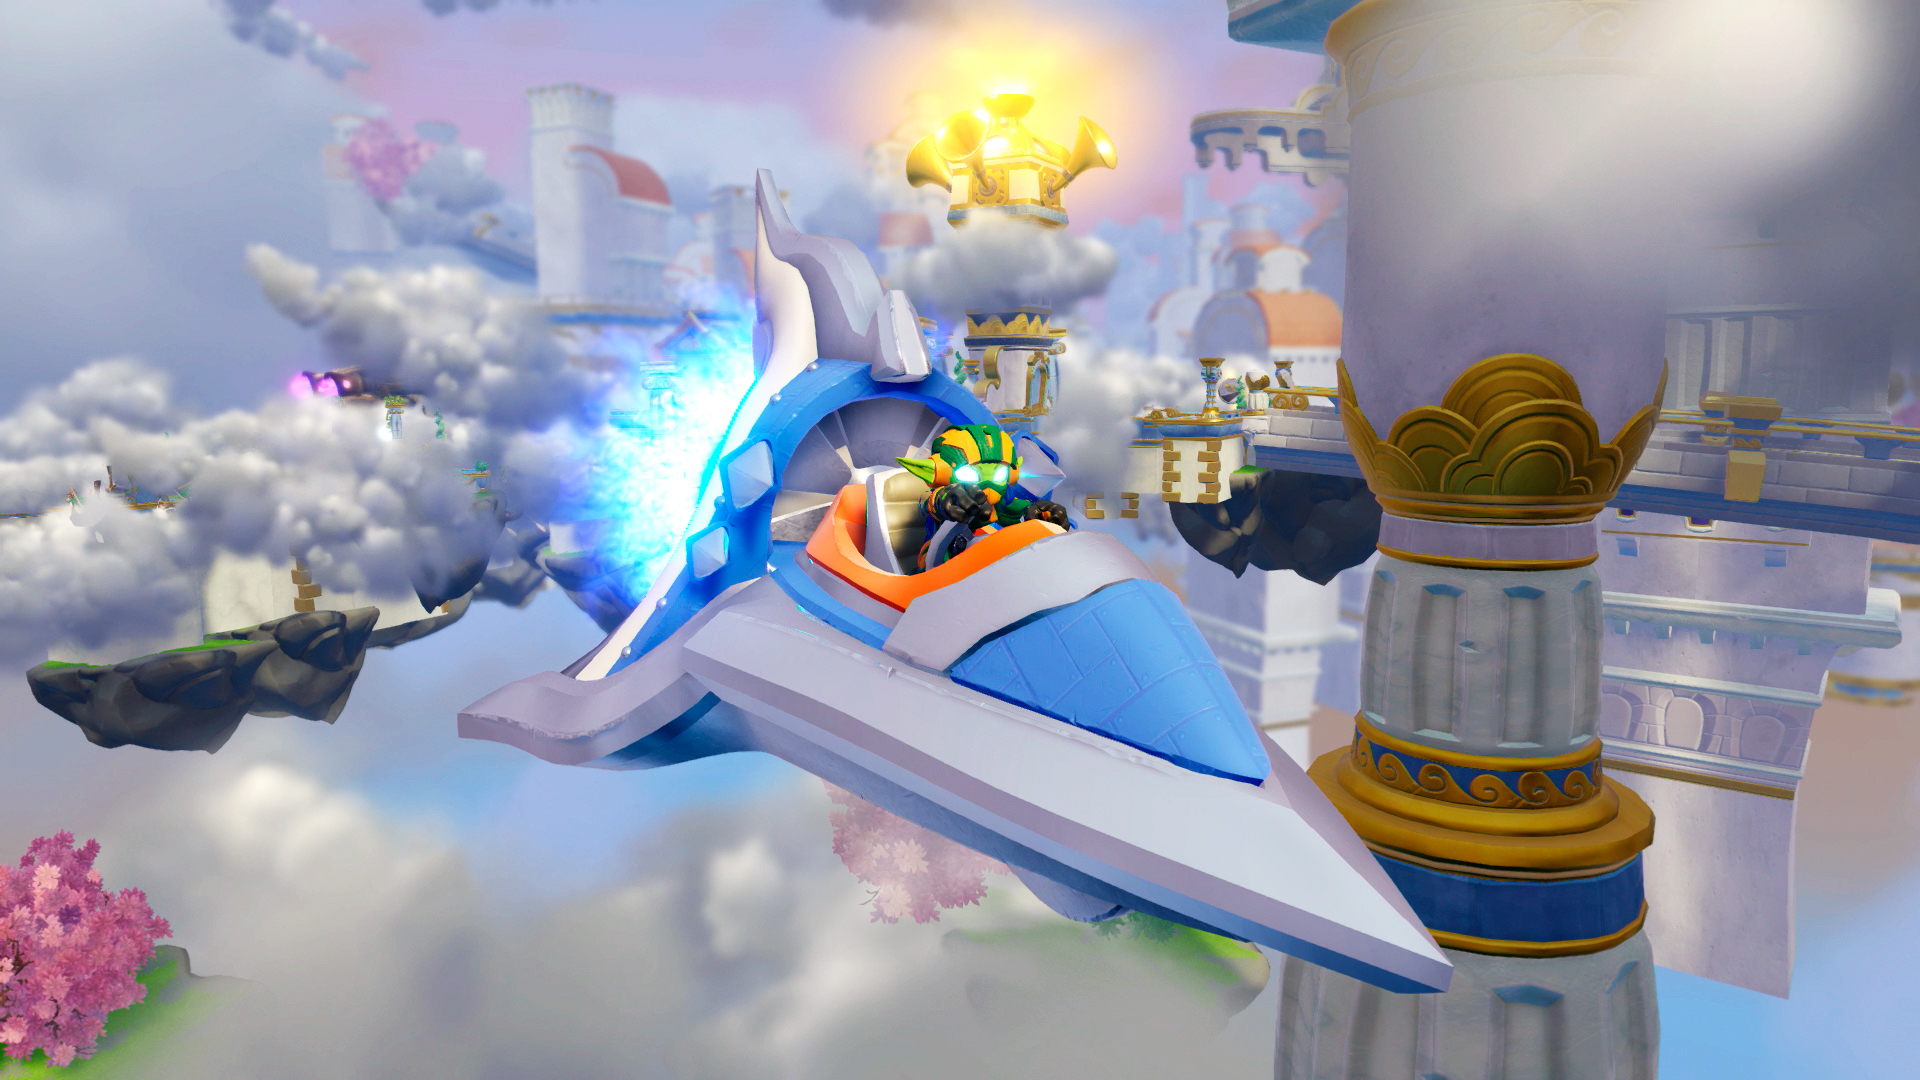 Activision and Vicarious Visions introduce vehicles to Skylanders franchise.